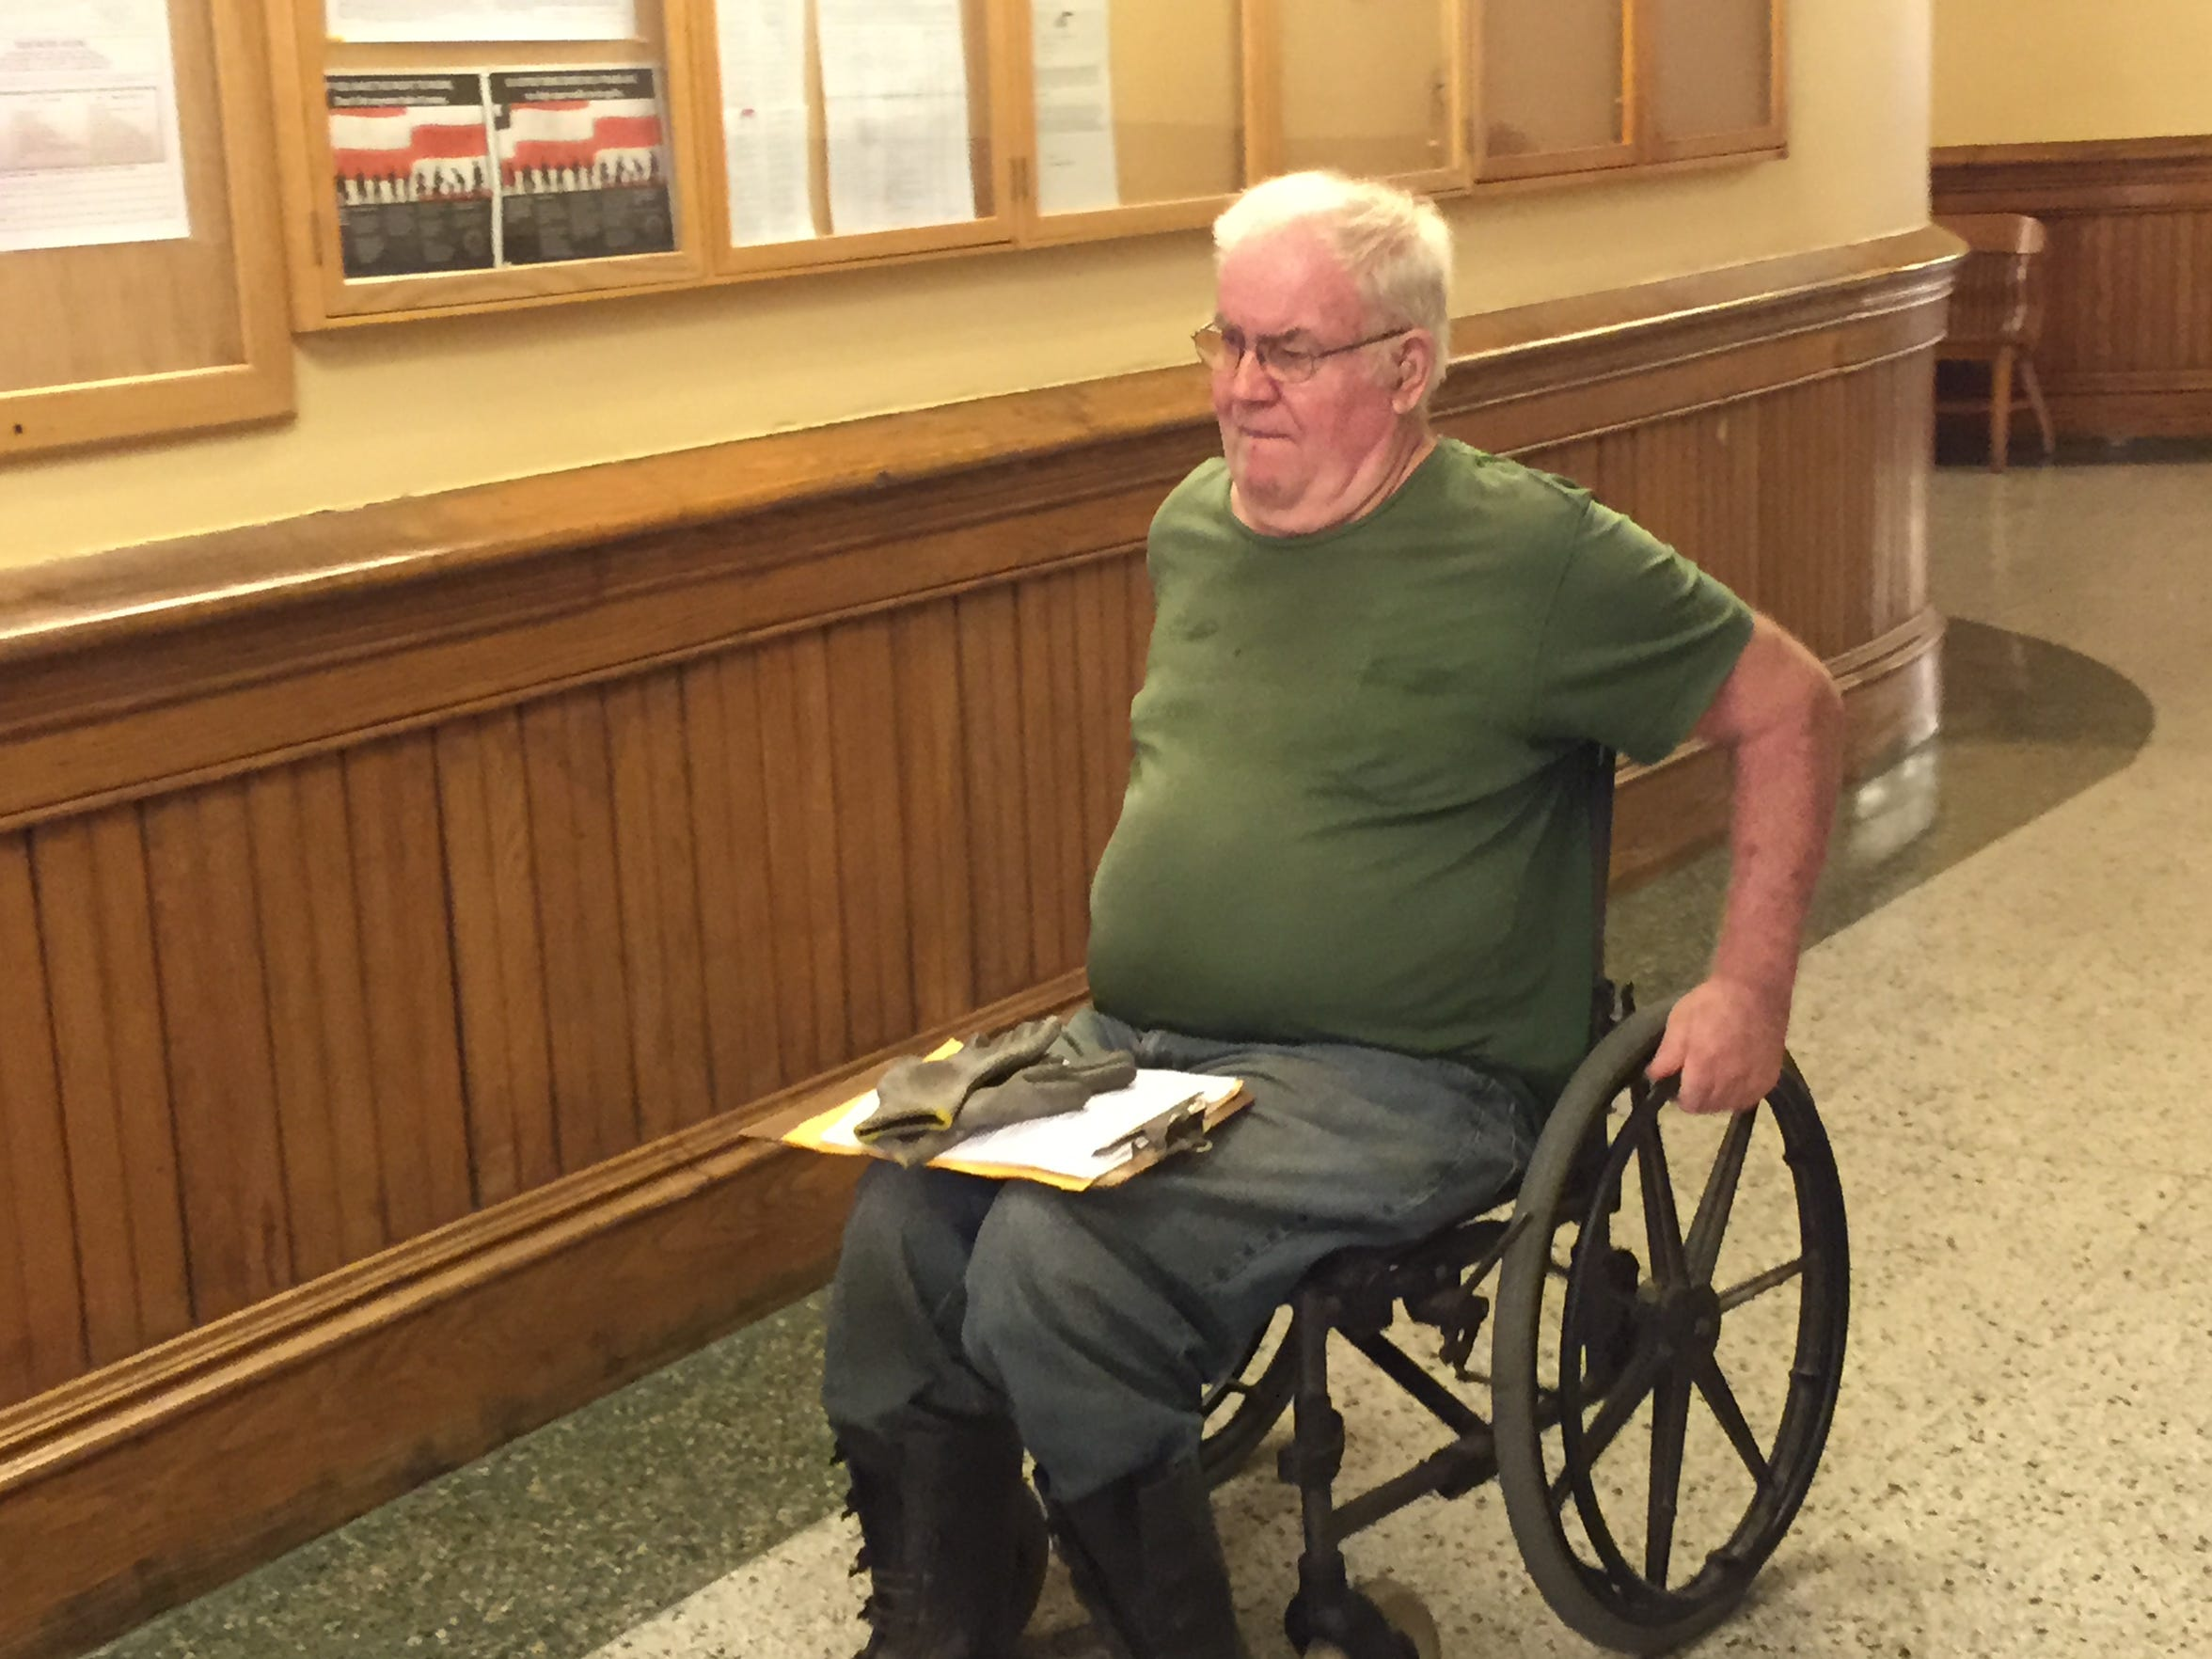 Randy Sanders appeared in July 2015 because he refused to turn over Spud, his prized border collie that he used to sire litters of dogs. Sanders died Jan. 30, 2017, leaving more than $115,000 in unpaid liabilities to the county and the kennel that took care of his abused dogs.